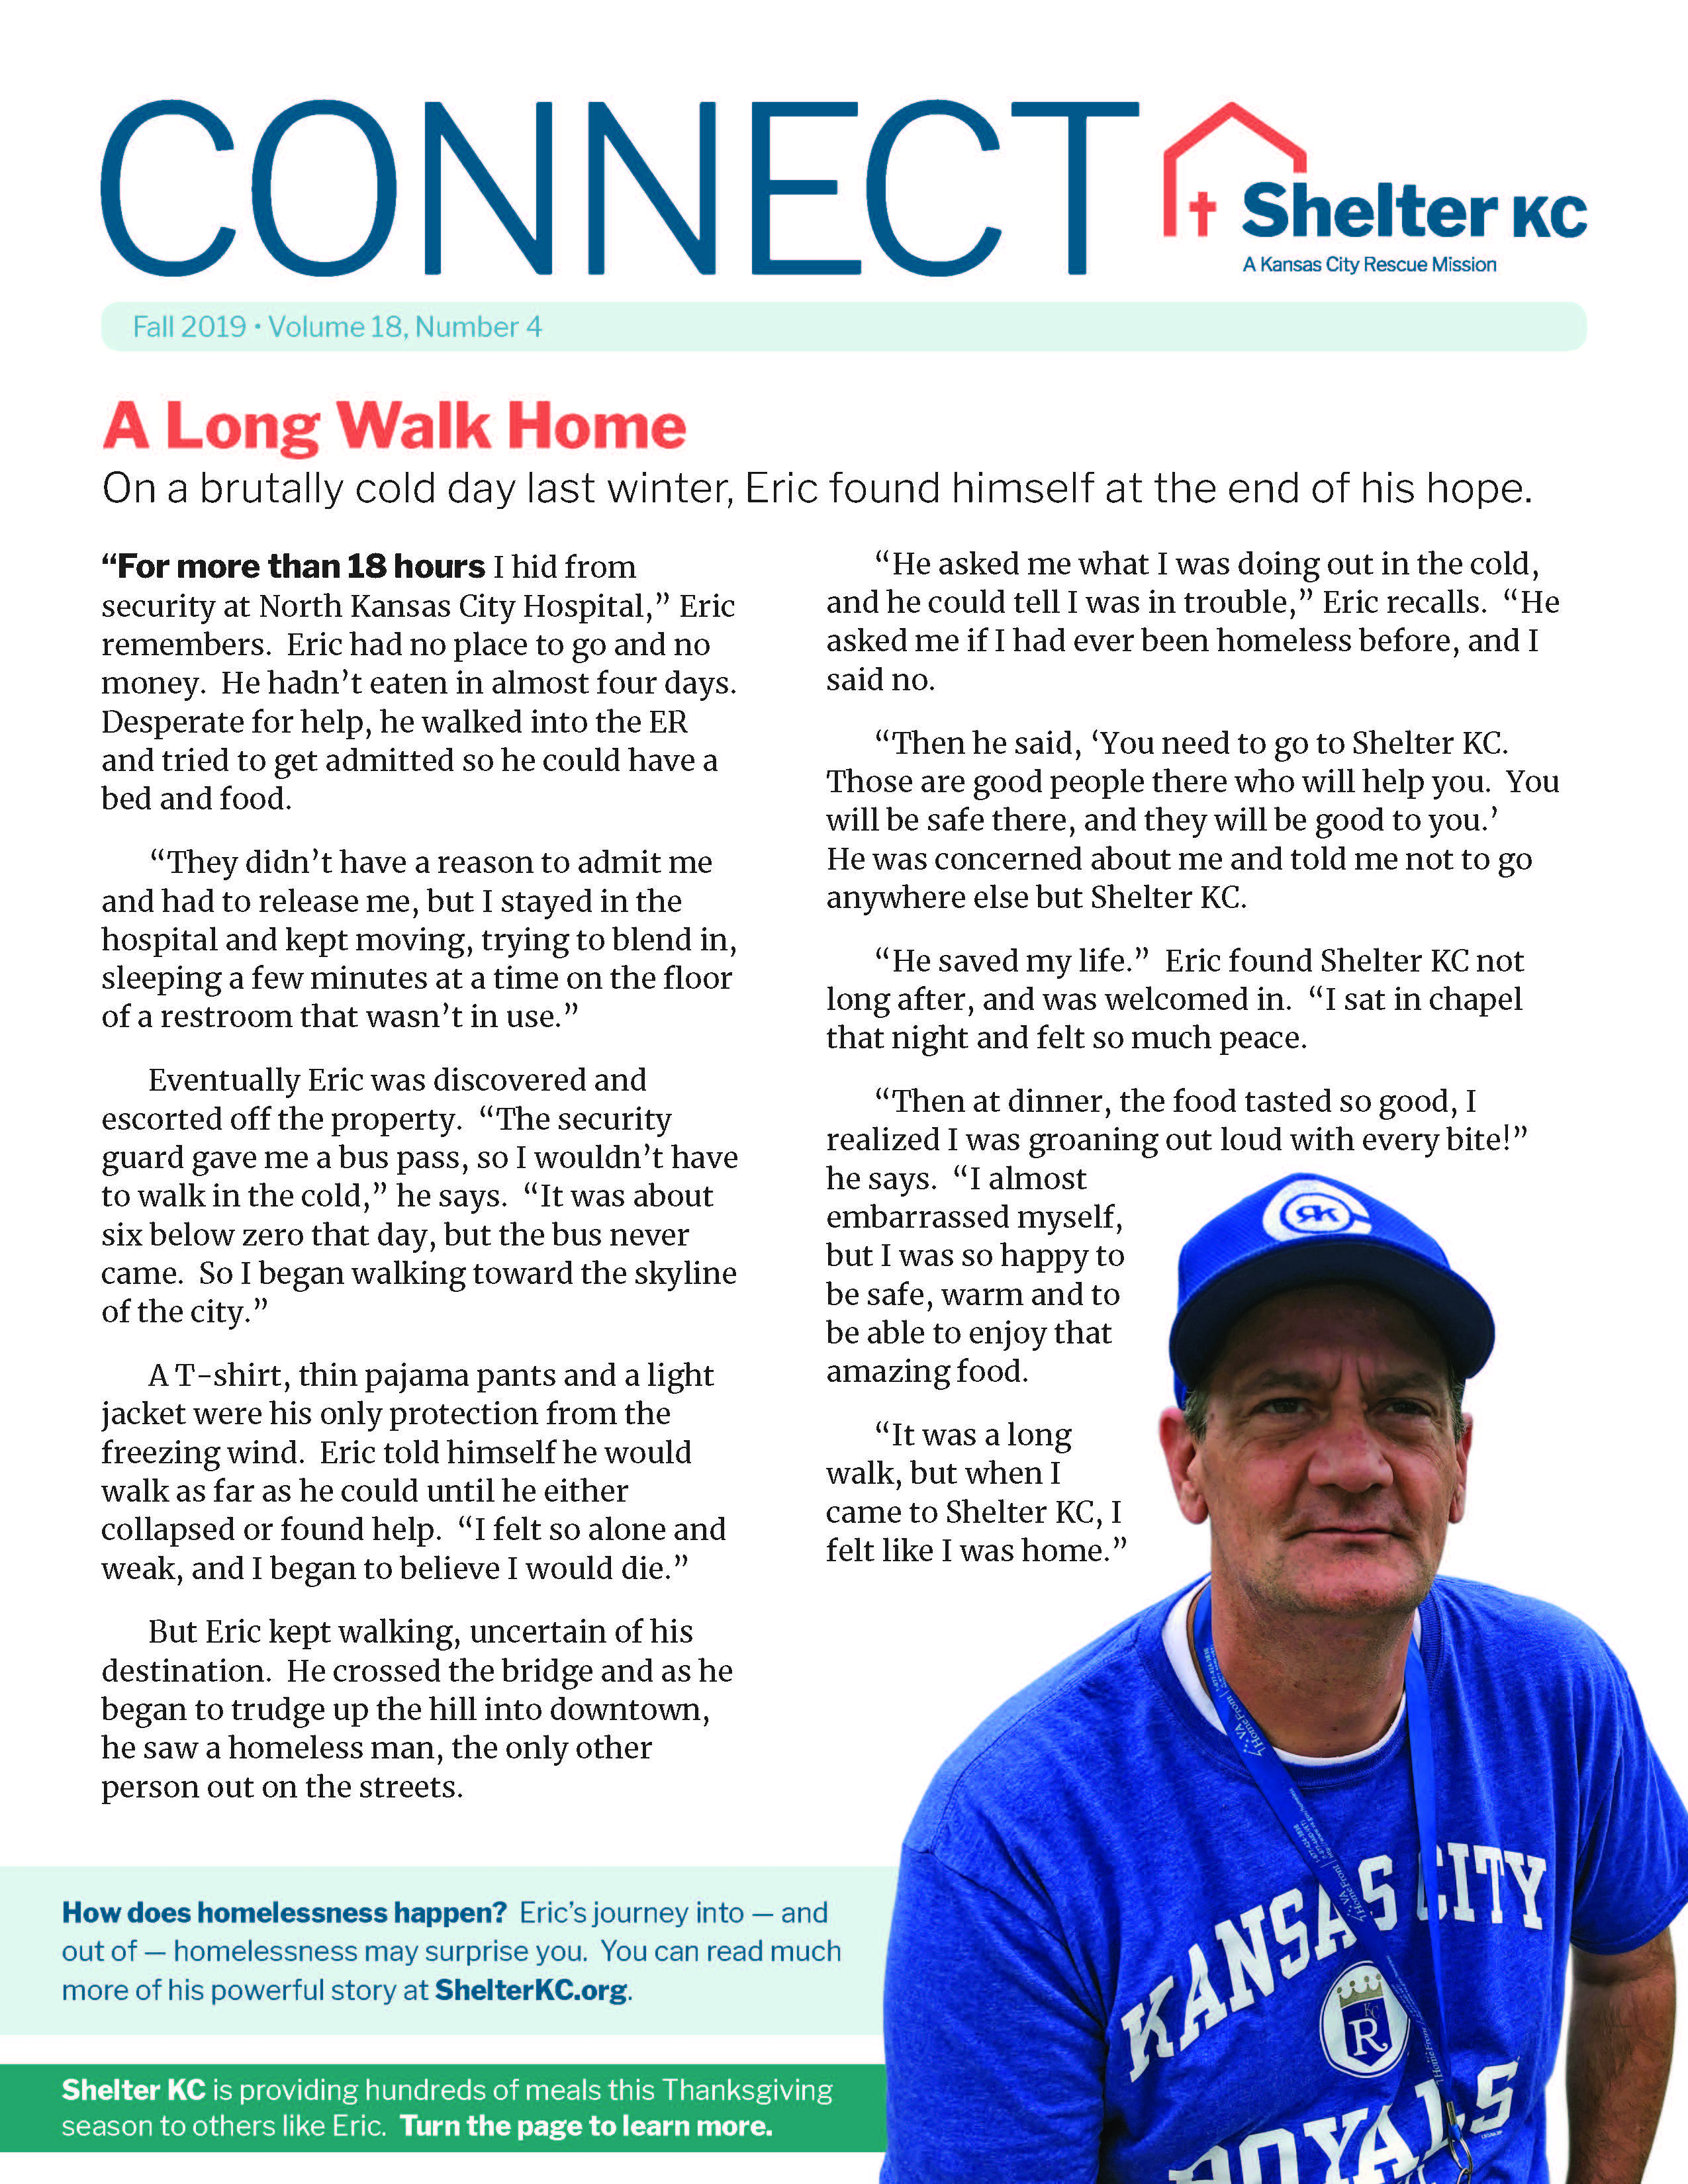 Eric's Long walk home story in Connect Volume 18